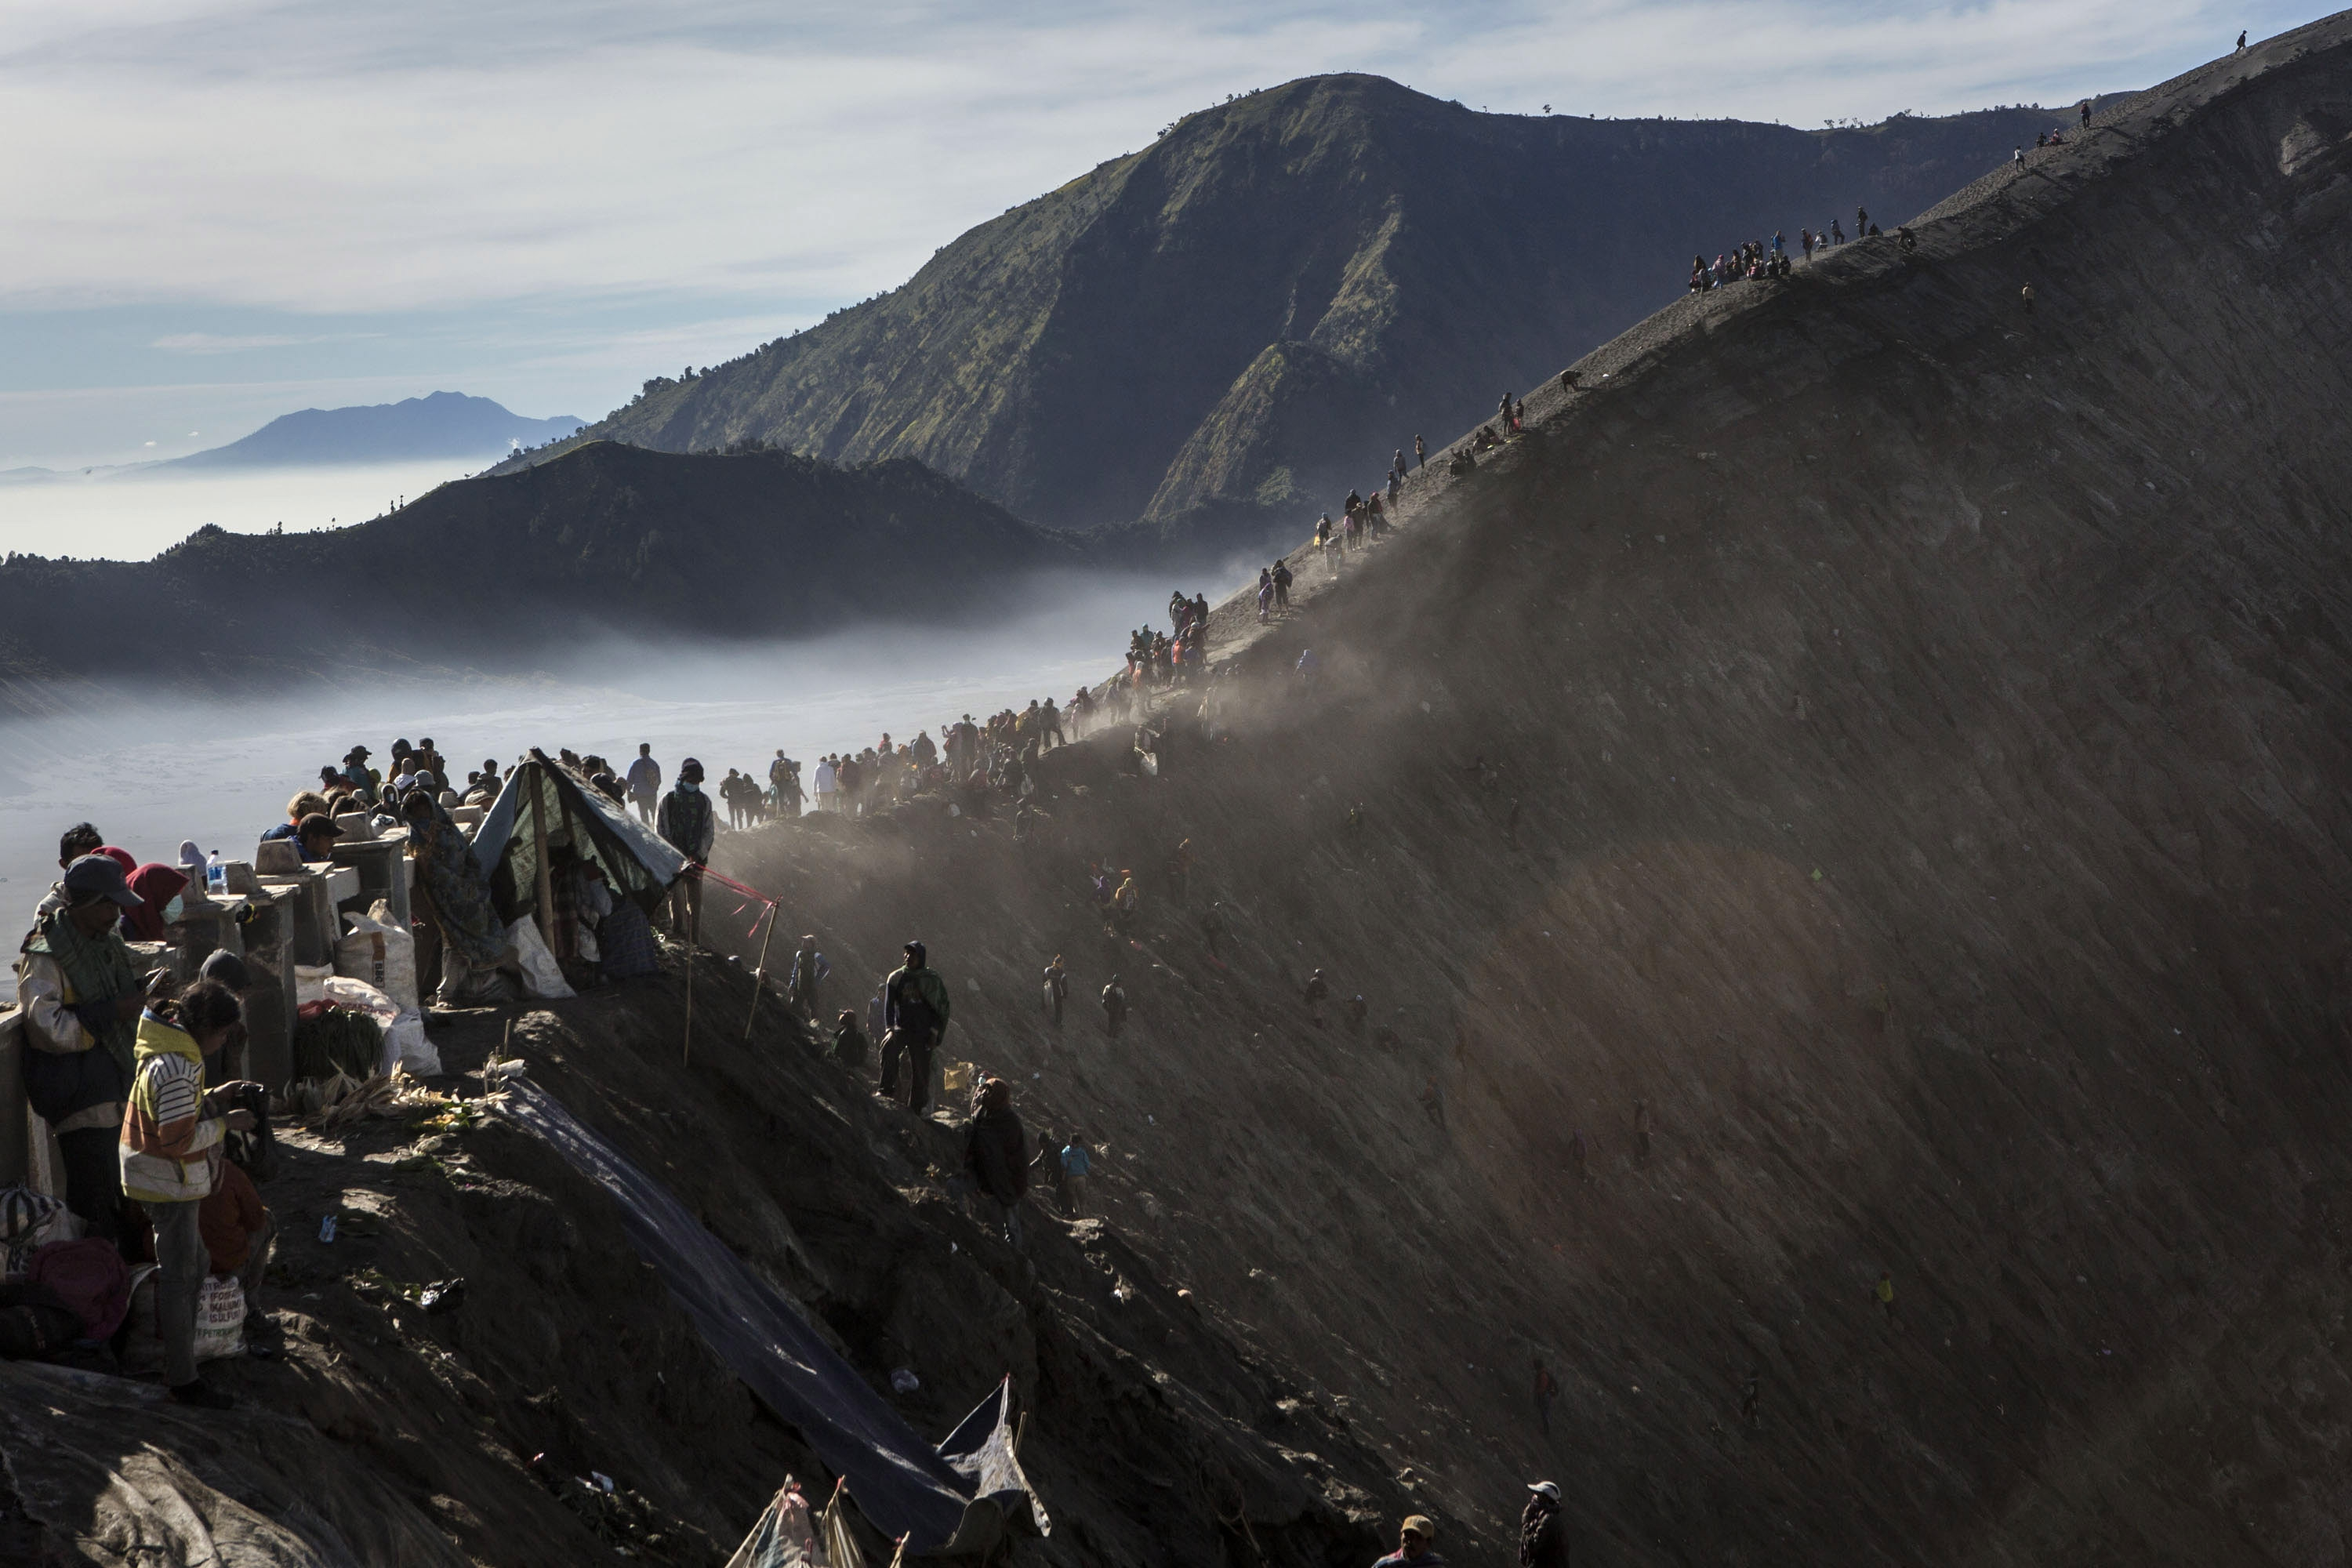 PROBOLINGGO, EAST JAVA, INDONESIA - AUGUST 01:  Tenggerese worshippers gather at the crater of Mount Bromo during the Yadnya Kasada Festival on August 01, 2015 in Probolinggo, East Java, Indonesia. The festival is the main festival of the Tenggerese people and lasts about a month. On the fourteenth day, the Tenggerese make the journey to Mount Bromo to make offerings of rice, fruits, vegetables, flowers and livestock to the mountain gods by throwing them into the volcano's caldera. The origin of the festival lies in the 15th century when a princess named Roro Anteng started the principality of Tengger with her husband Joko Seger, and the childless couple asked the mountain Gods for help in bearing children. The legend says the Gods granted them 24 children but on the provision that the 25th must be tossed into the volcano in sacrifice. The 25th child, Kesuma, was finally sacrificed in this way after initial refusal, and the tradition of throwing sacrifices into the caldera to appease the mountain Gods continues today. (Photo by Ulet Ifansasti/Getty Images) *** BESTPIX ***